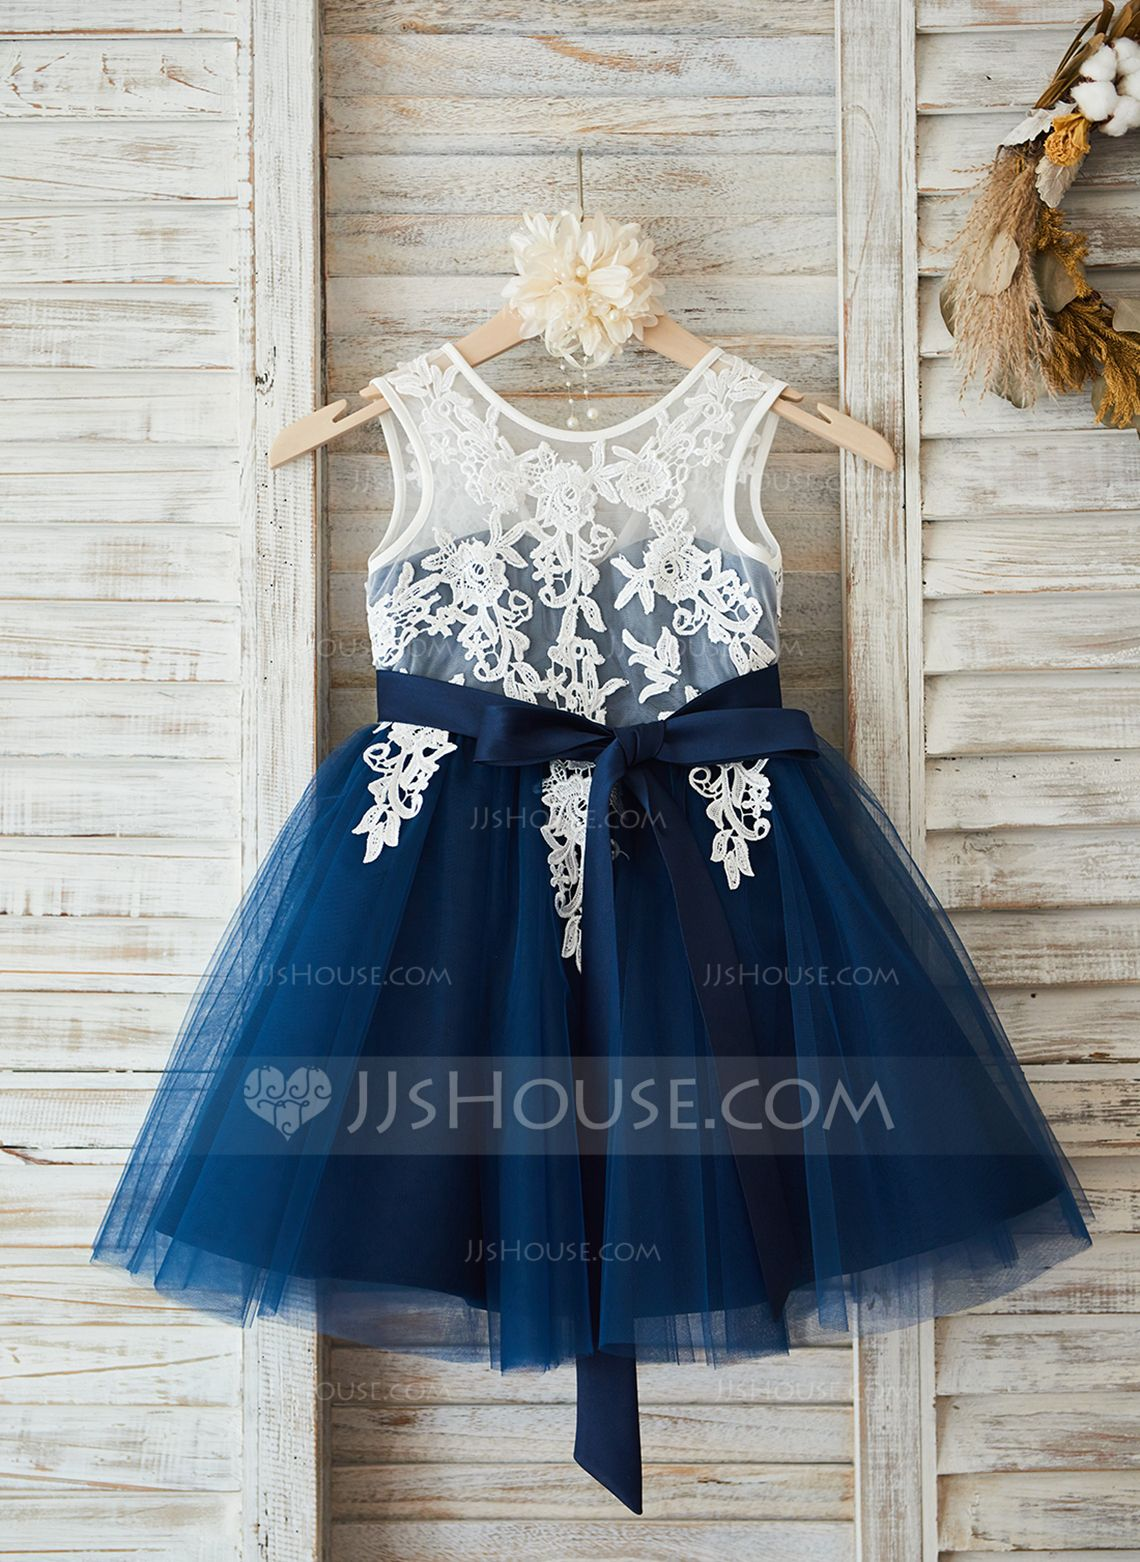 0a055981a A-Line/Princess Knee-length Flower Girl Dress - Tulle/Lace Sleeveless Scoop  Neck With Sash/V Back (Detachable sash) (010090575) - Flower Girl Dresses -  JJ's ...